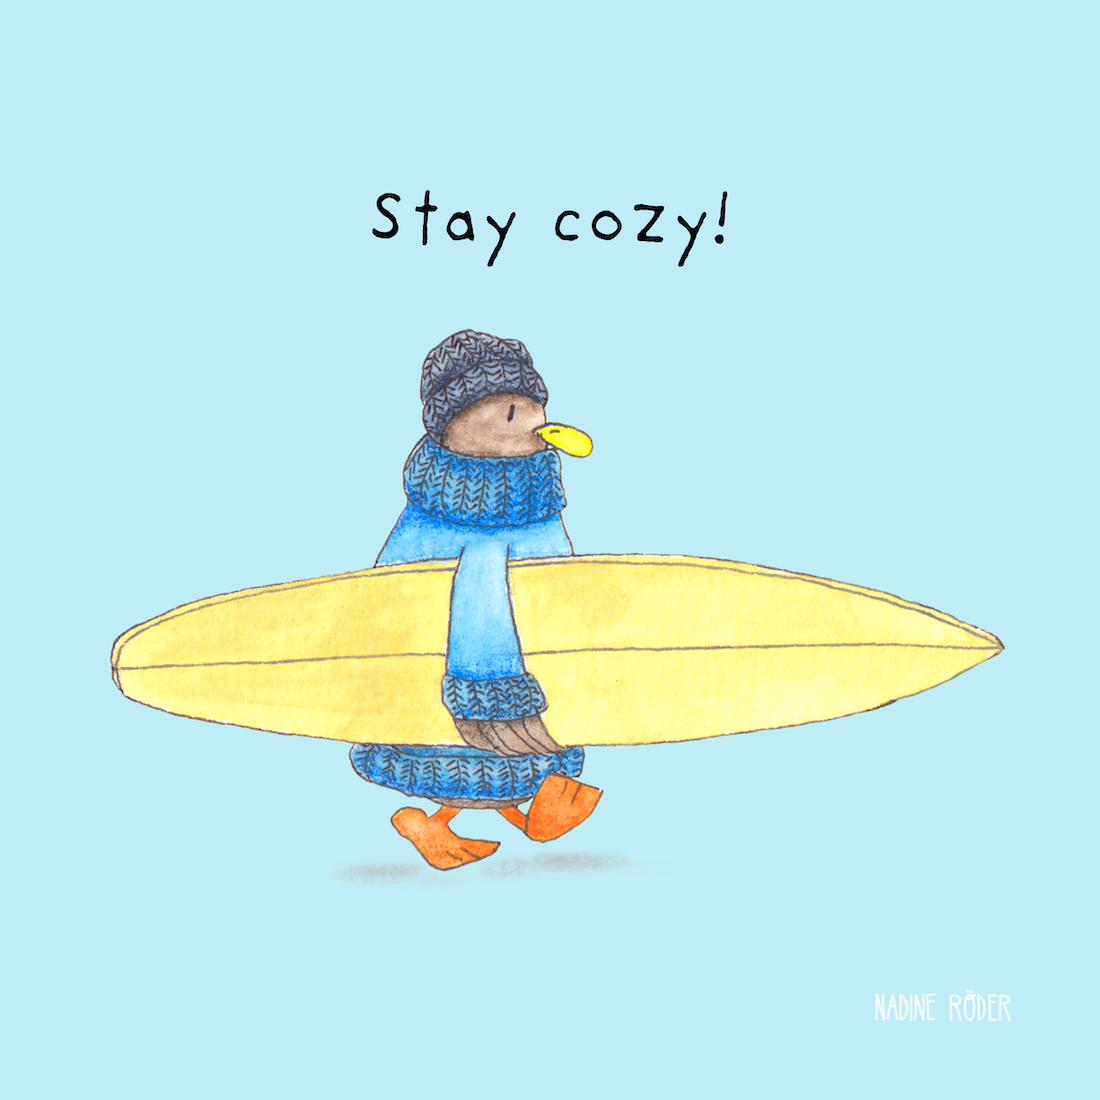 https://nadineroeder.com/wp-content/uploads/2021/01/Nadine-Roeder-Illustration-Surfing-Animals-Club-Stay-cozy.png